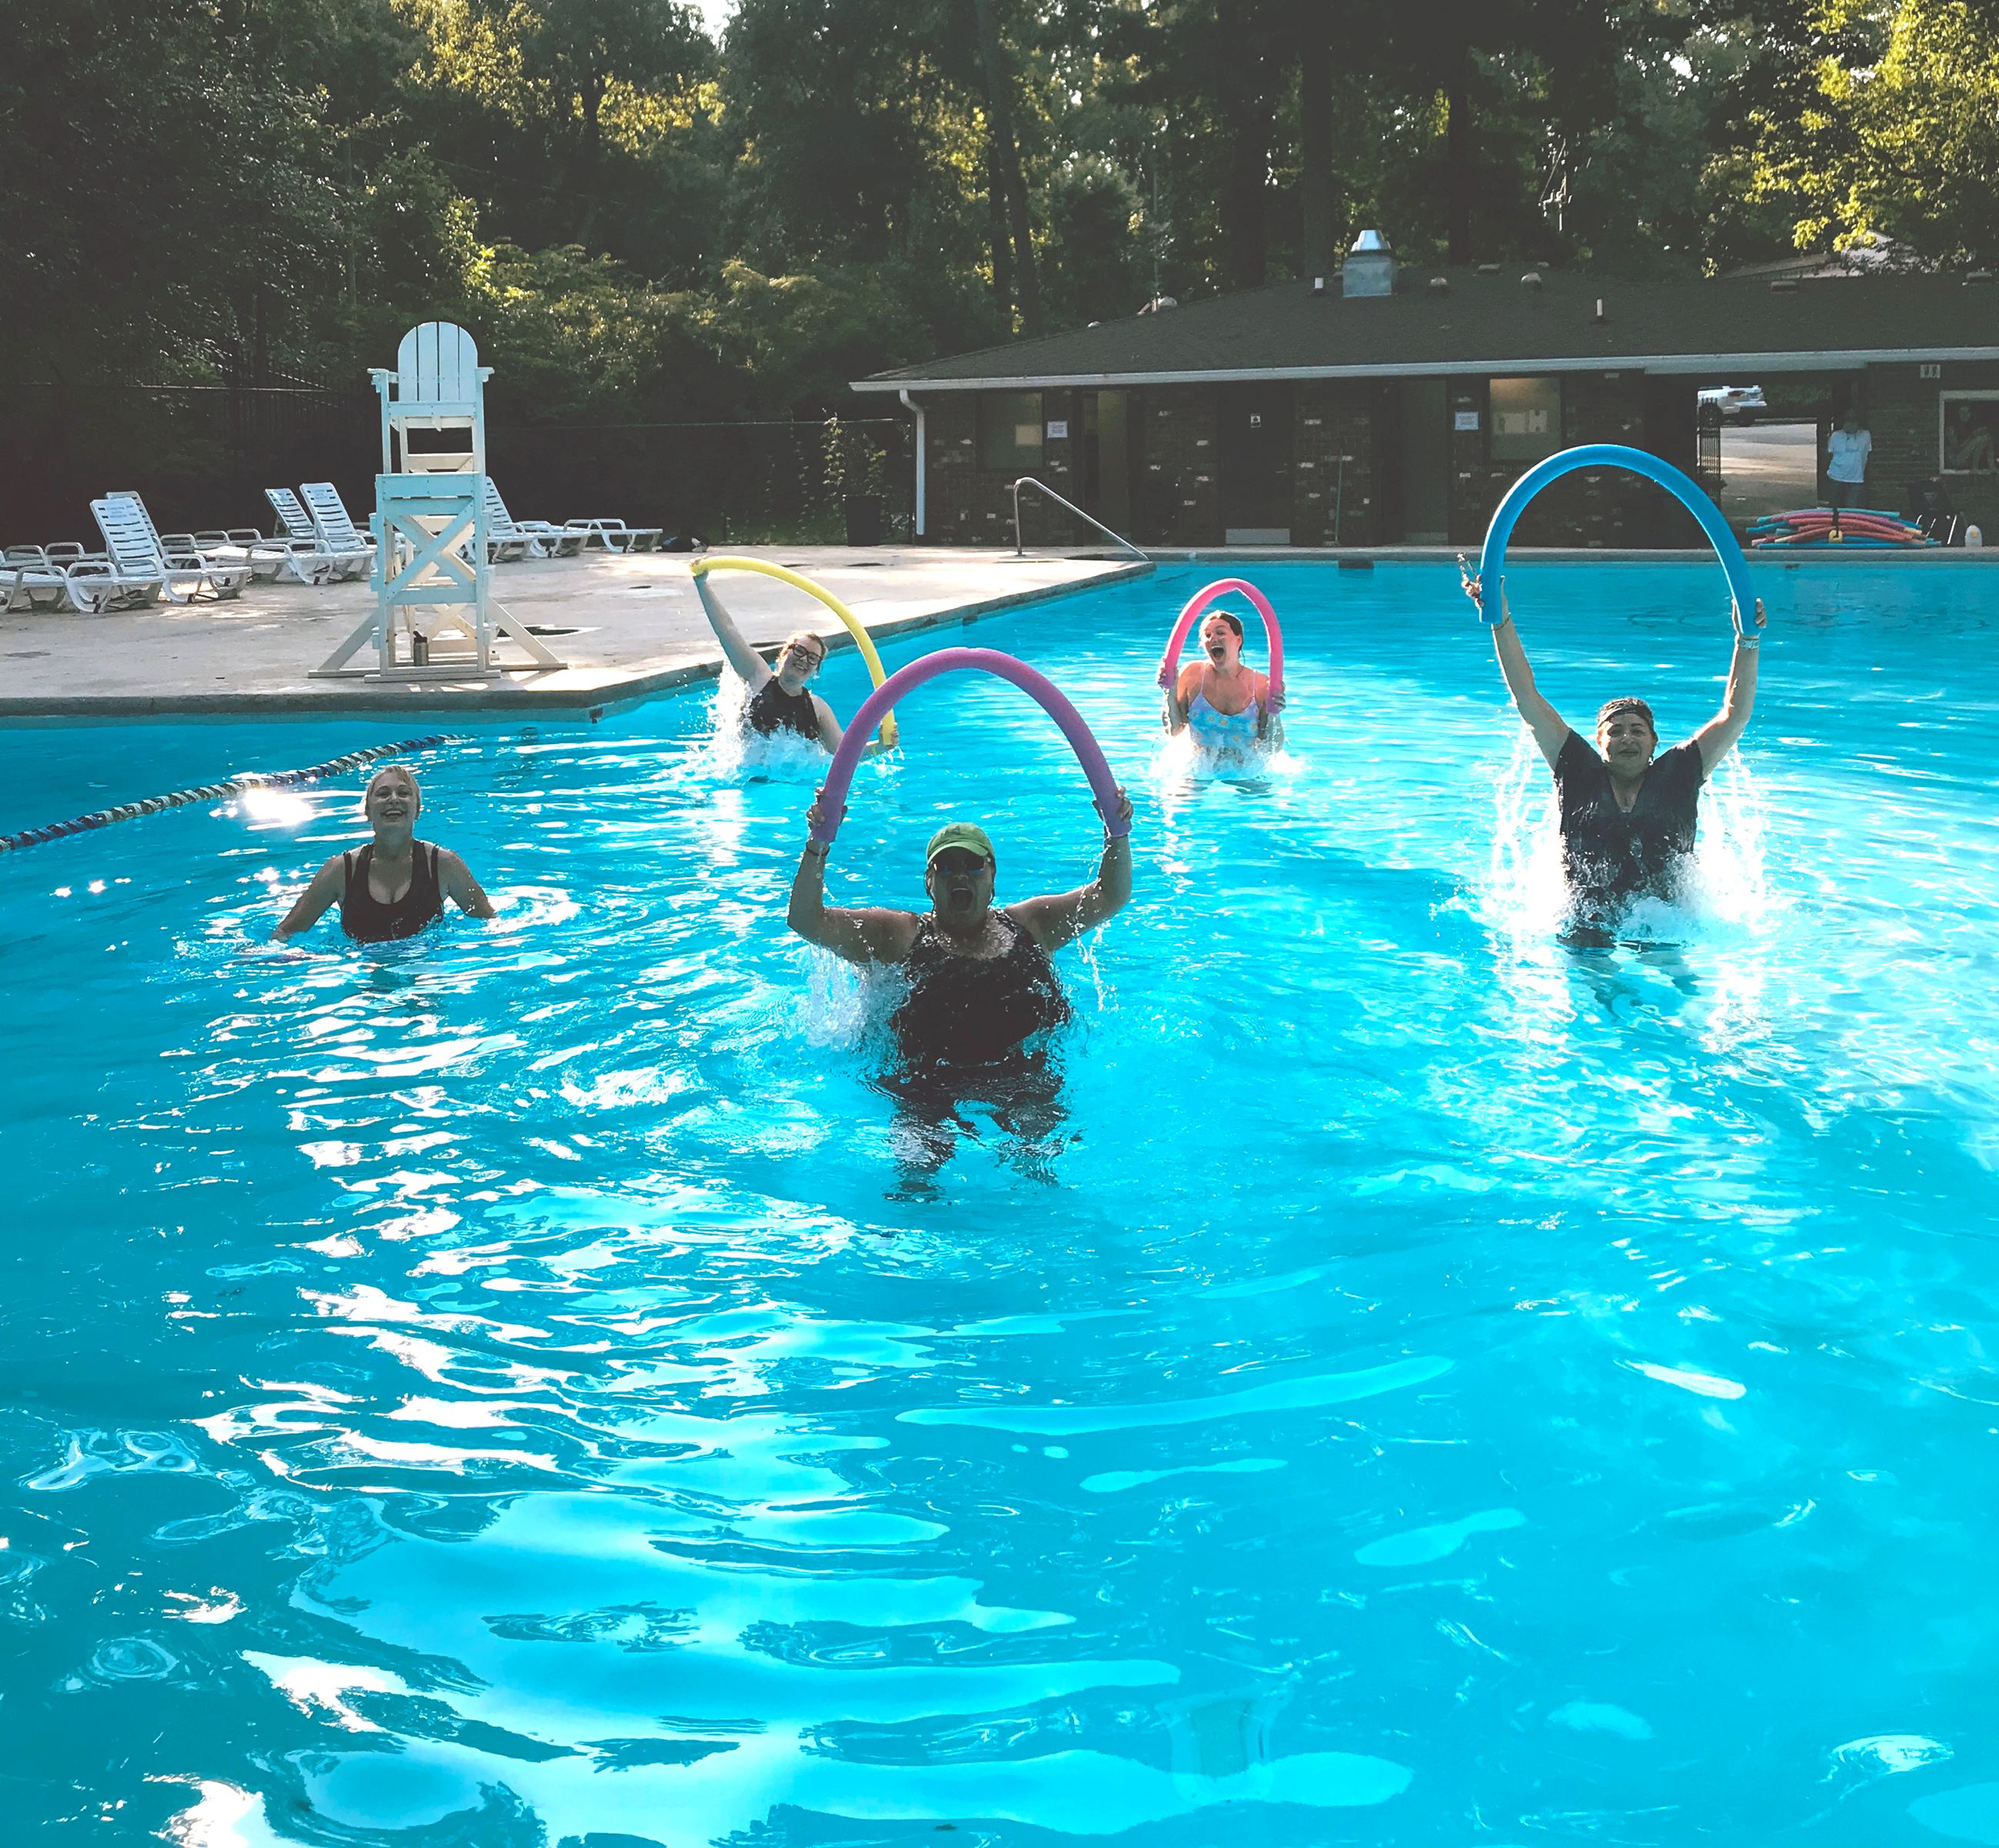 A group of ladies participate in water aerobics in the swimming pool.